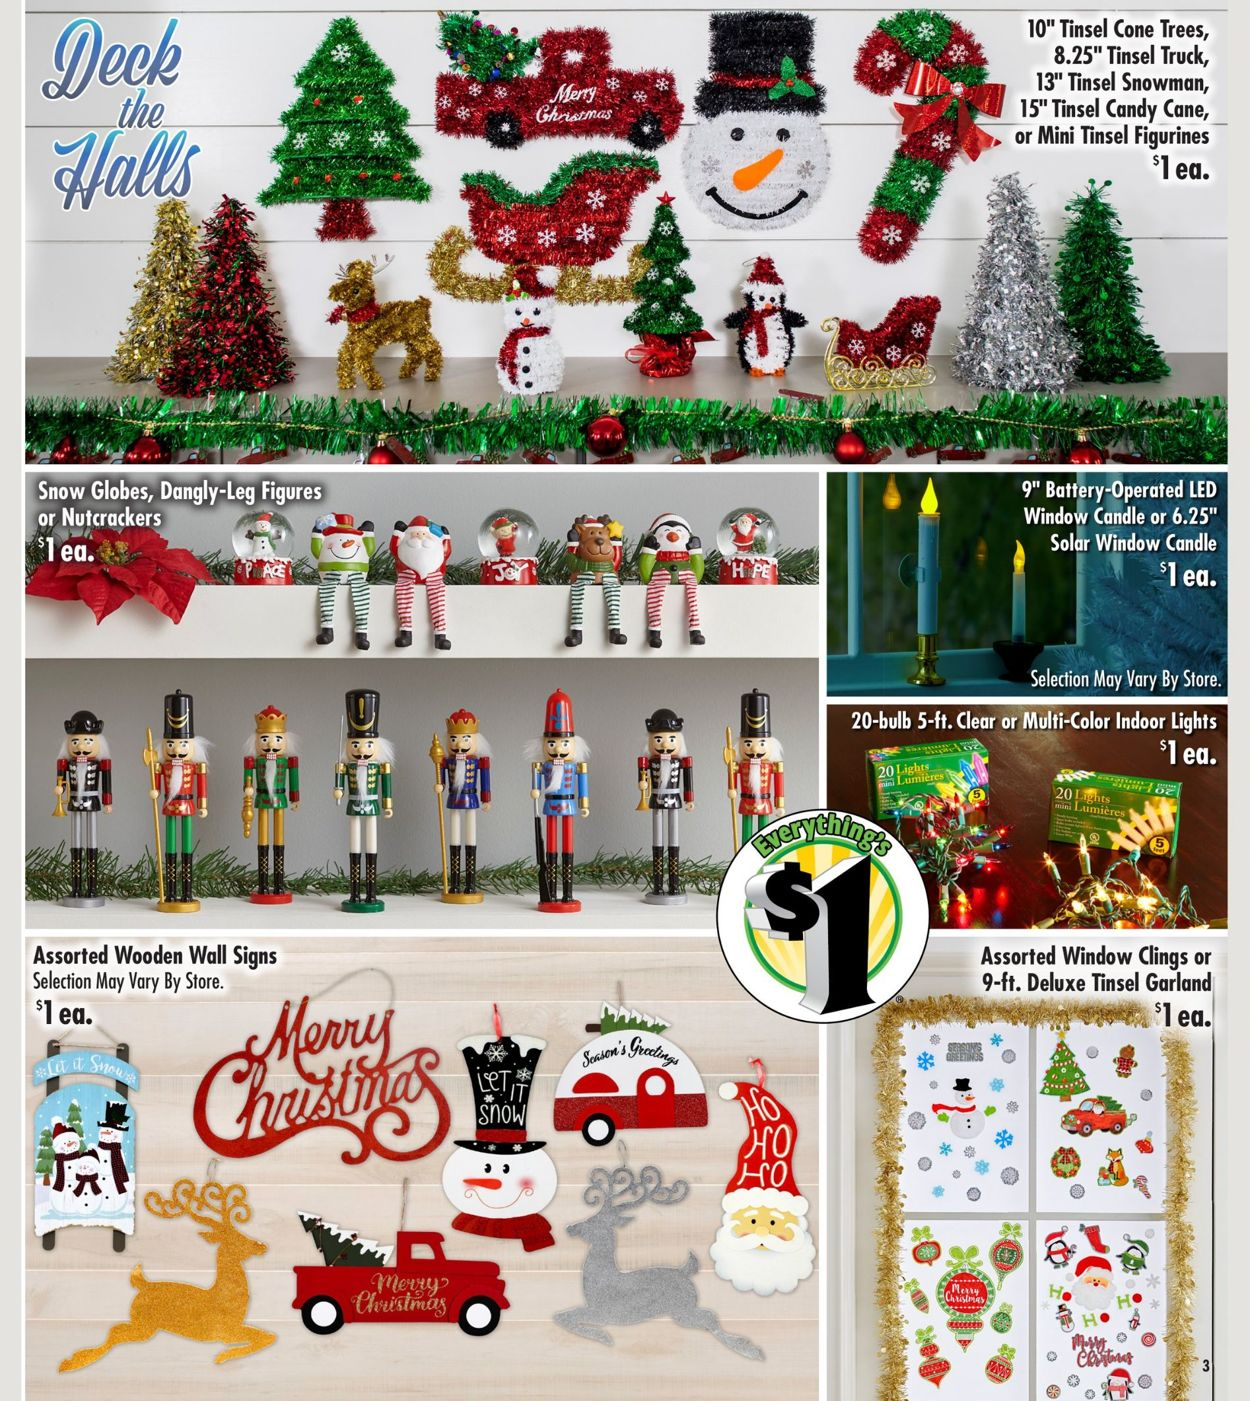 Dollar Tree 37841 Christmas Eve 2021 Hours Dollar Tree Holidays Ad 2019 Current Weekly Ad 10 25 12 18 2019 3 Frequent Ads Com